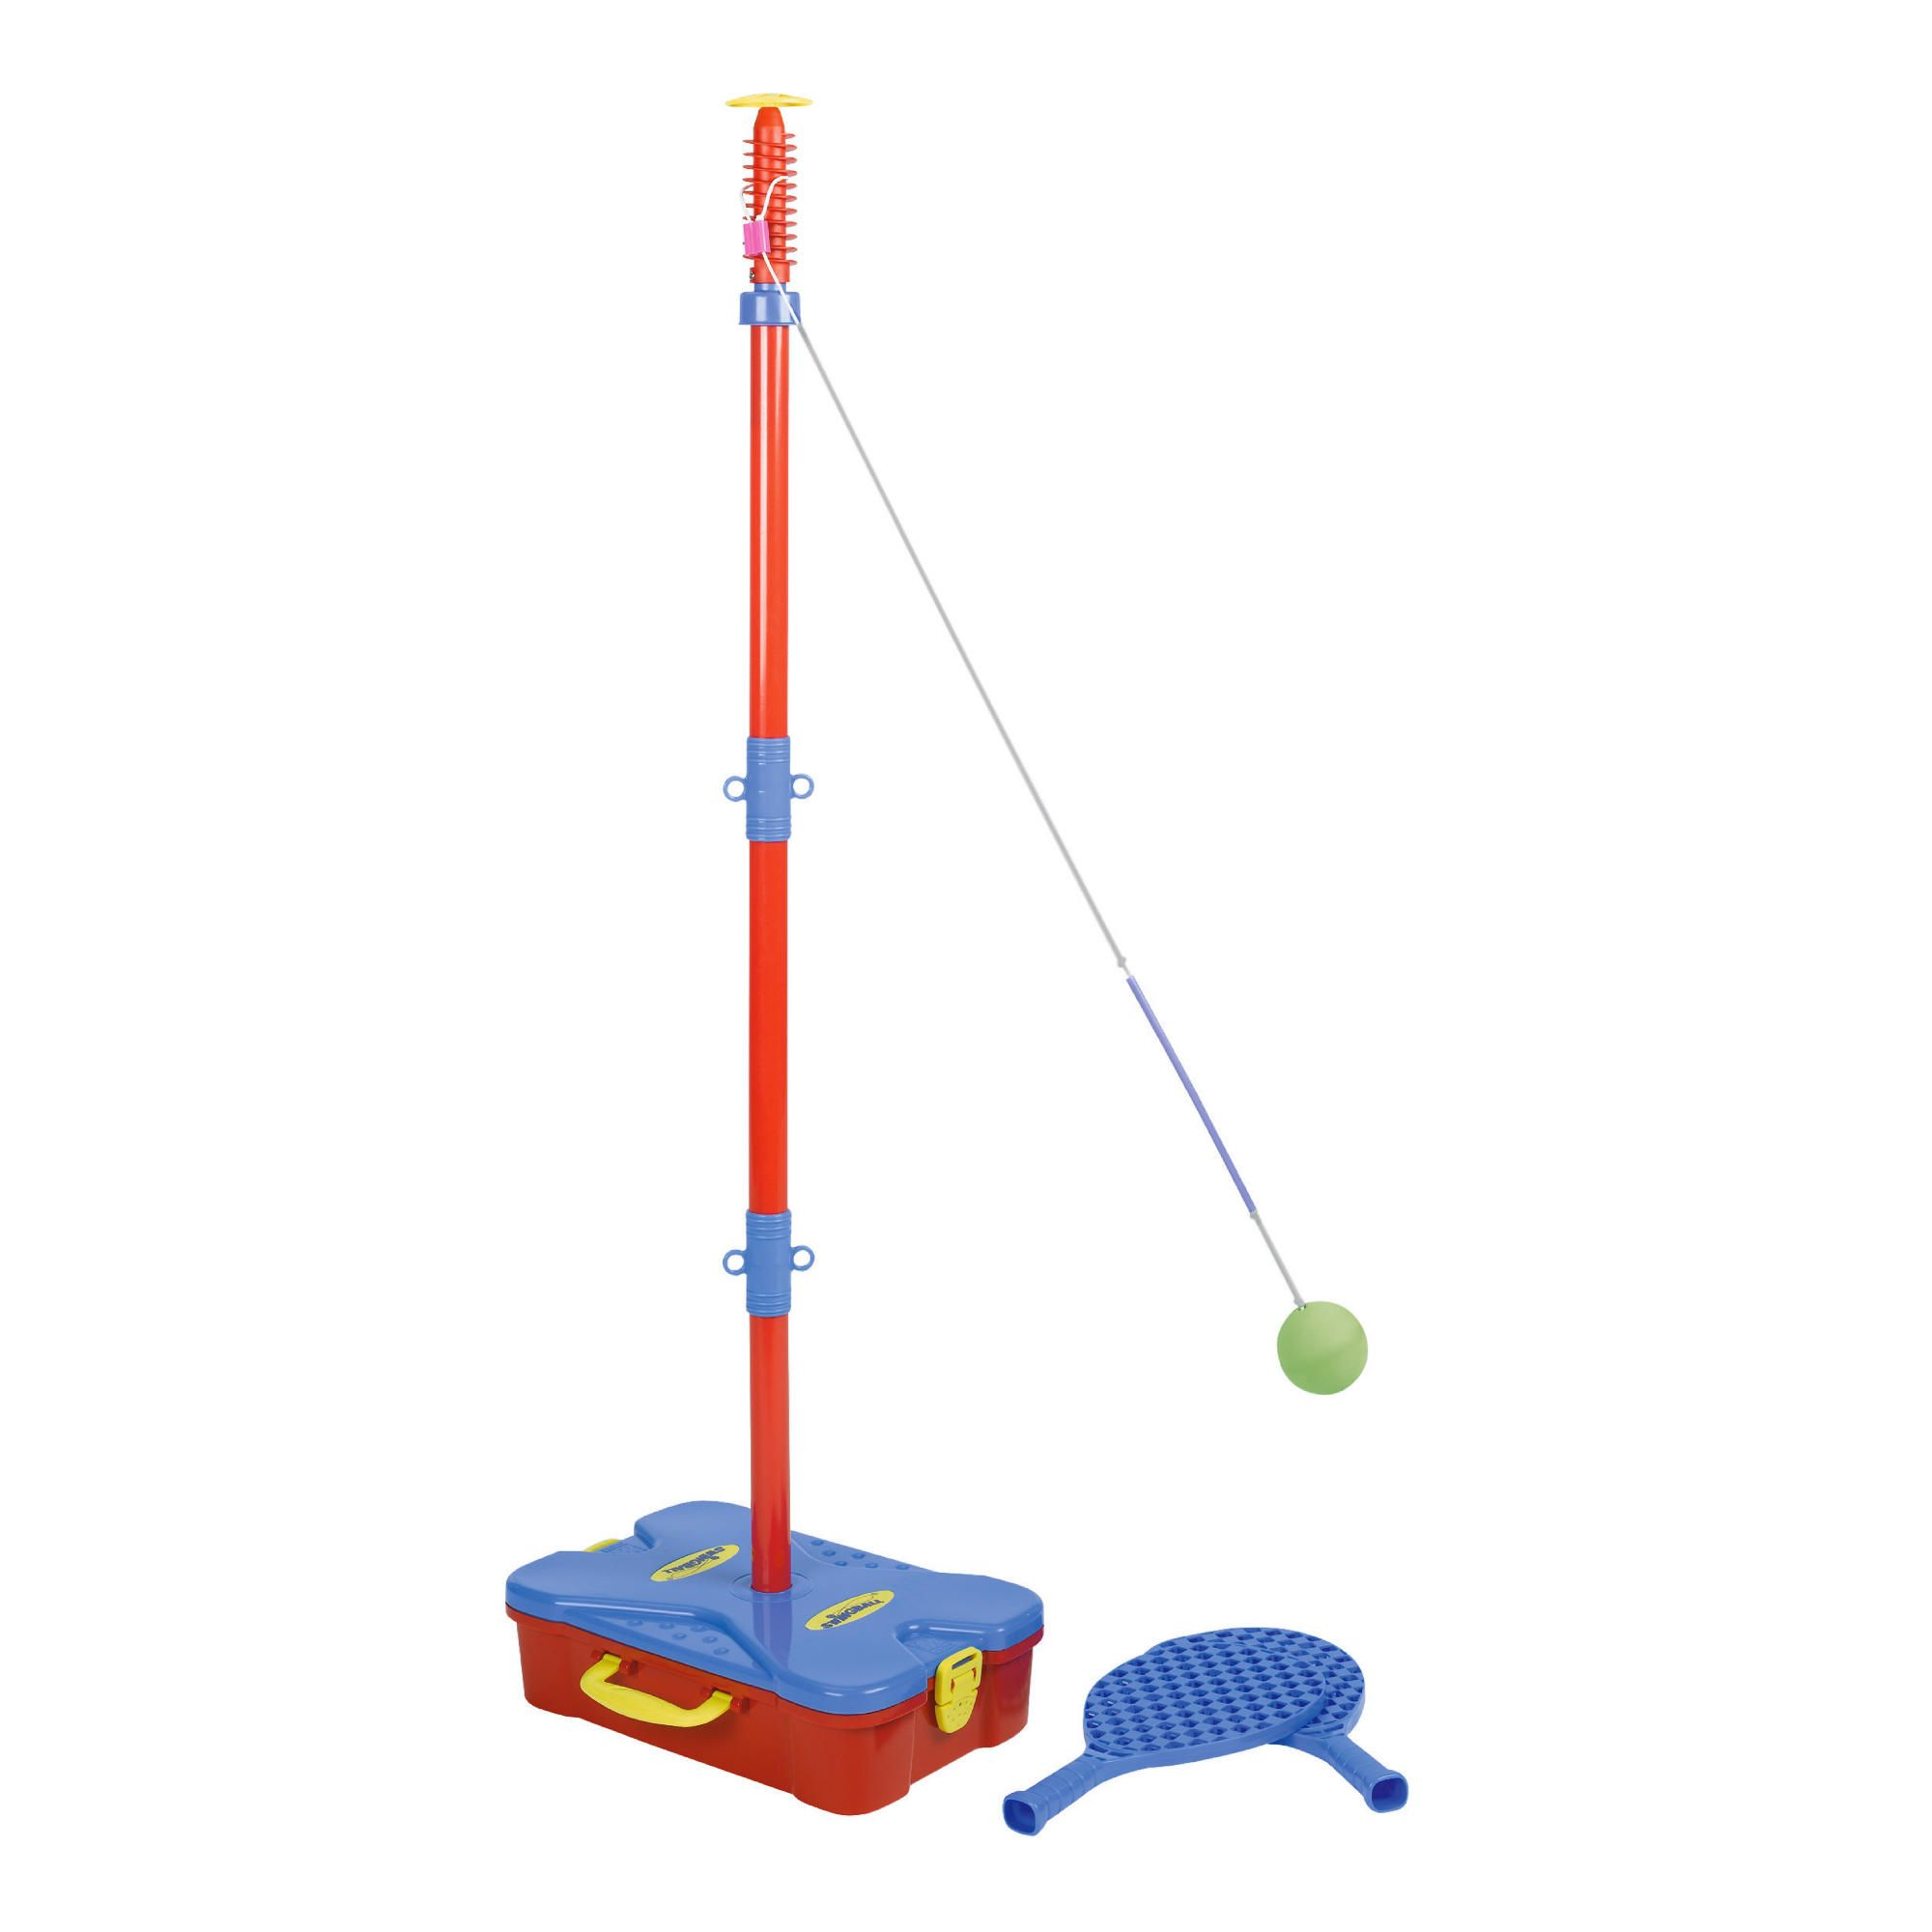 Smaller version of the classic garden game this first swingball set